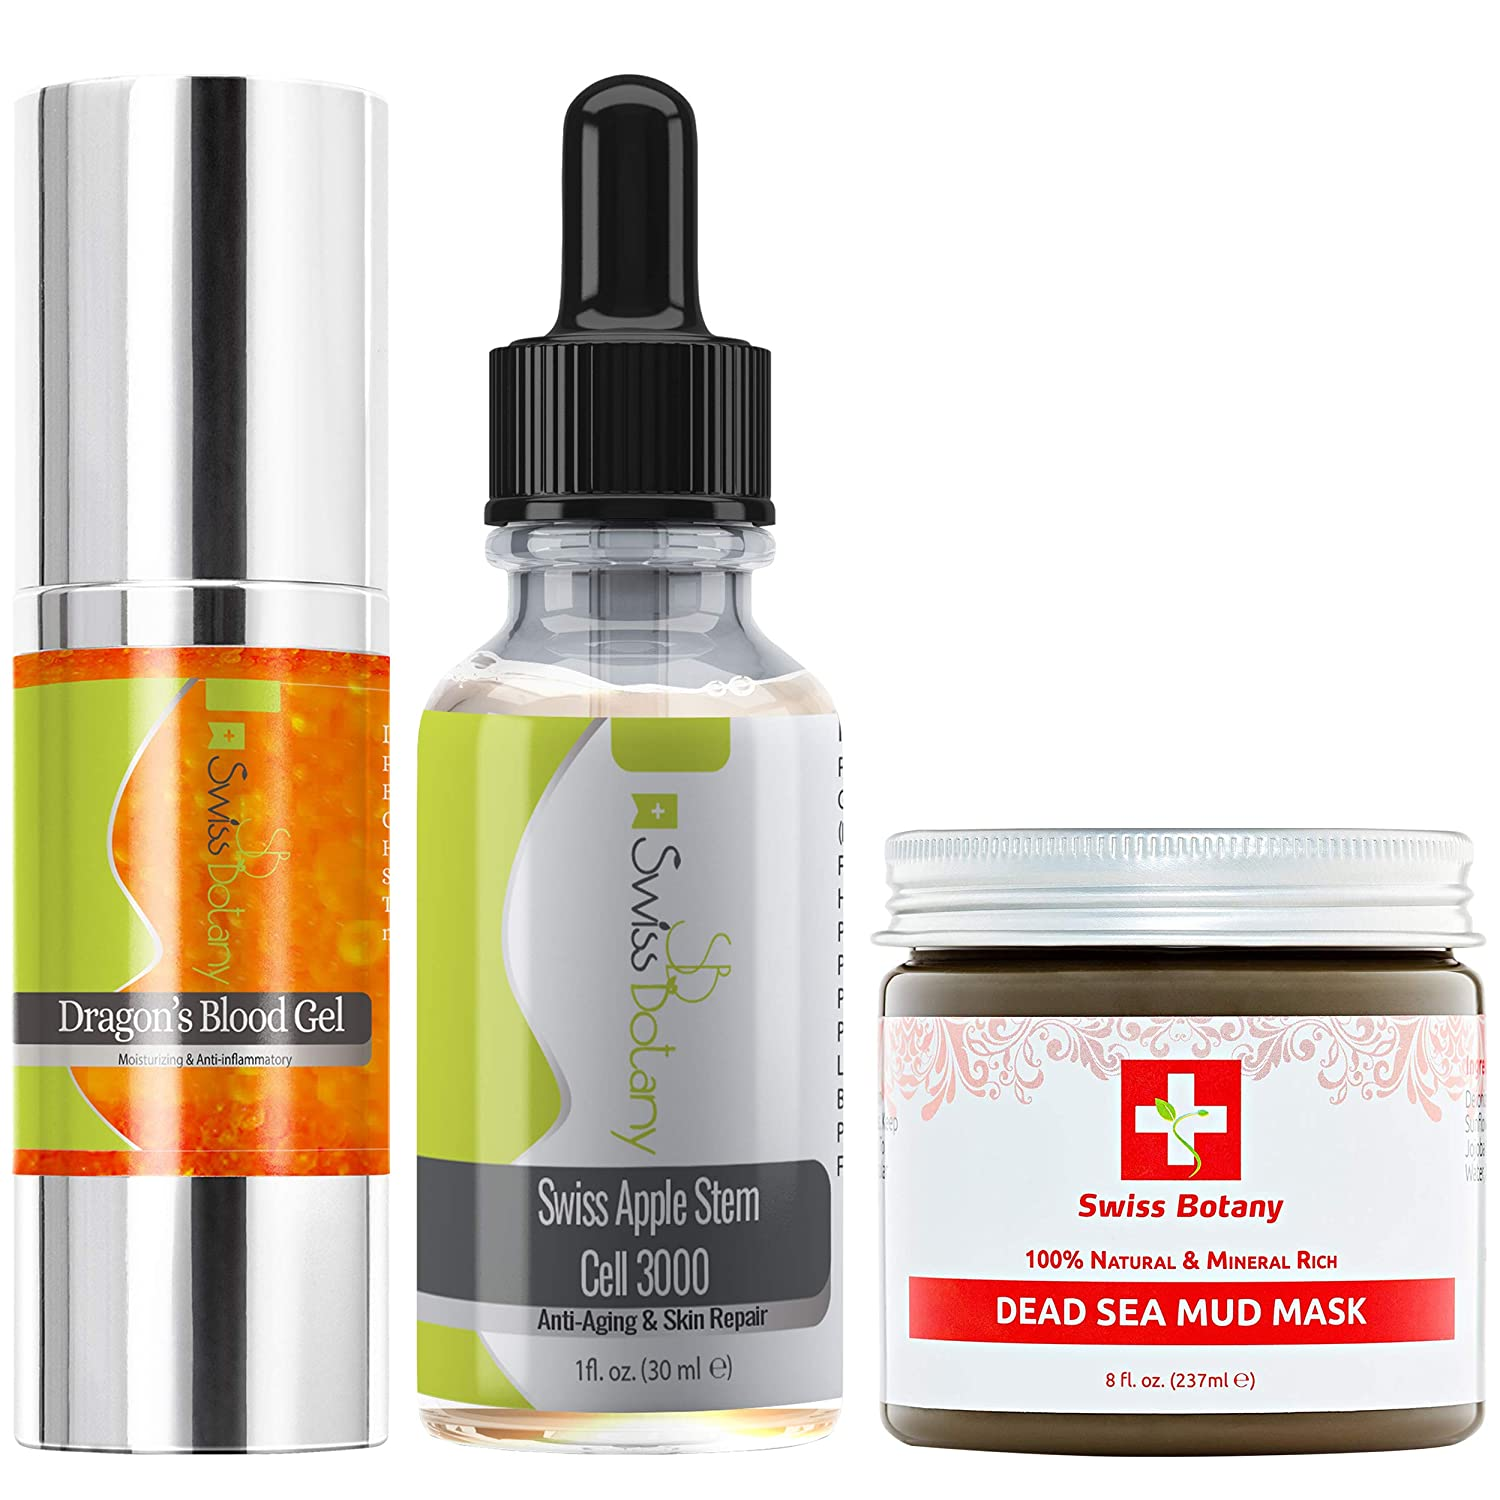 Swiss Apple Stem Cells Dragons Blood Gel Dead Sea Mud Ultimate Trio Pore Reducer ideal Skin Tightener for Fine Lines and Wrinkles, Sculpts Facial Contours, Acne, Oily Skin